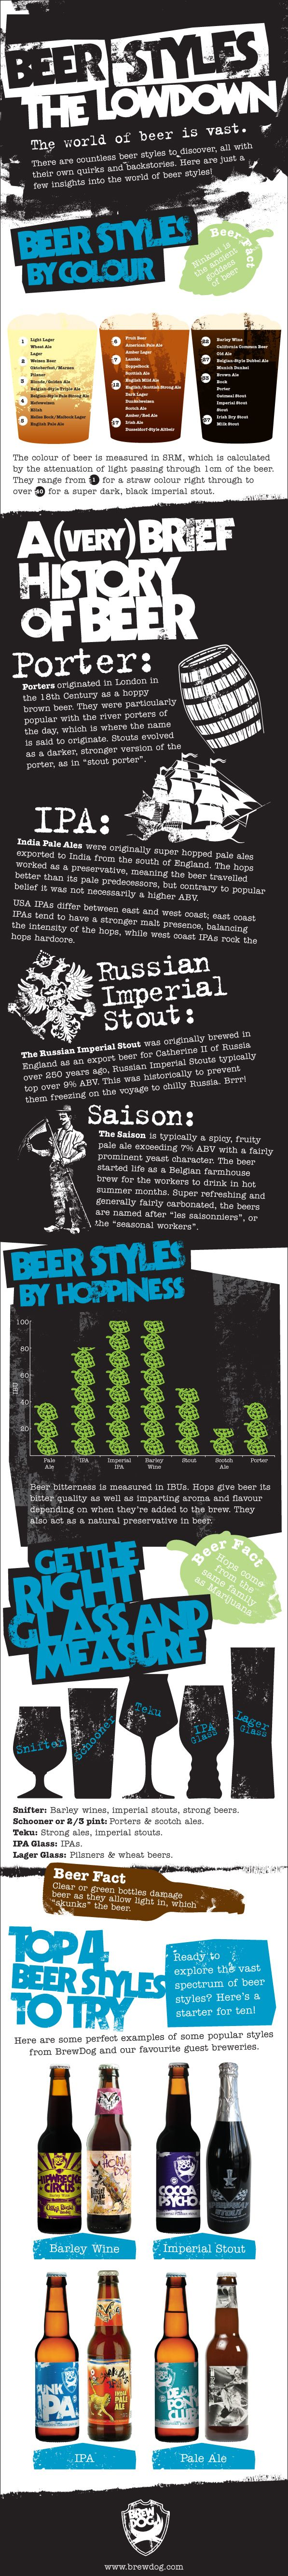 Craft beer styles infographic!